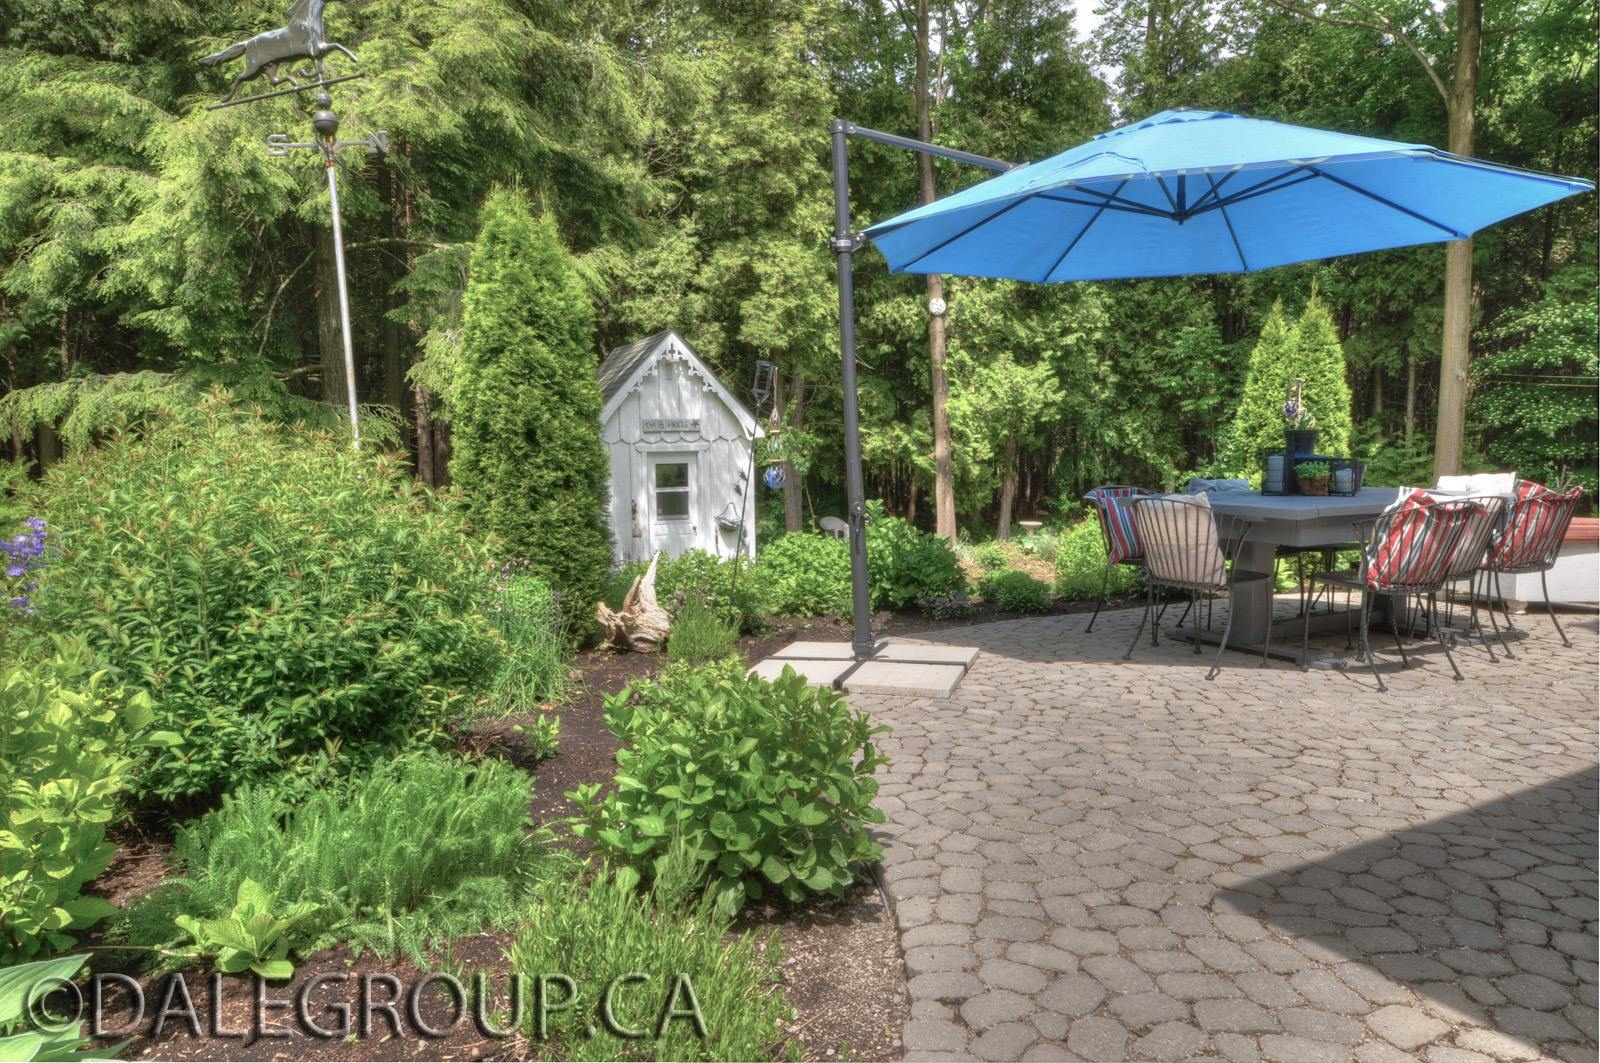 The backyard of Hoop Top House Bayfield Ontario Canada Currently on the market through Dale Group Realty